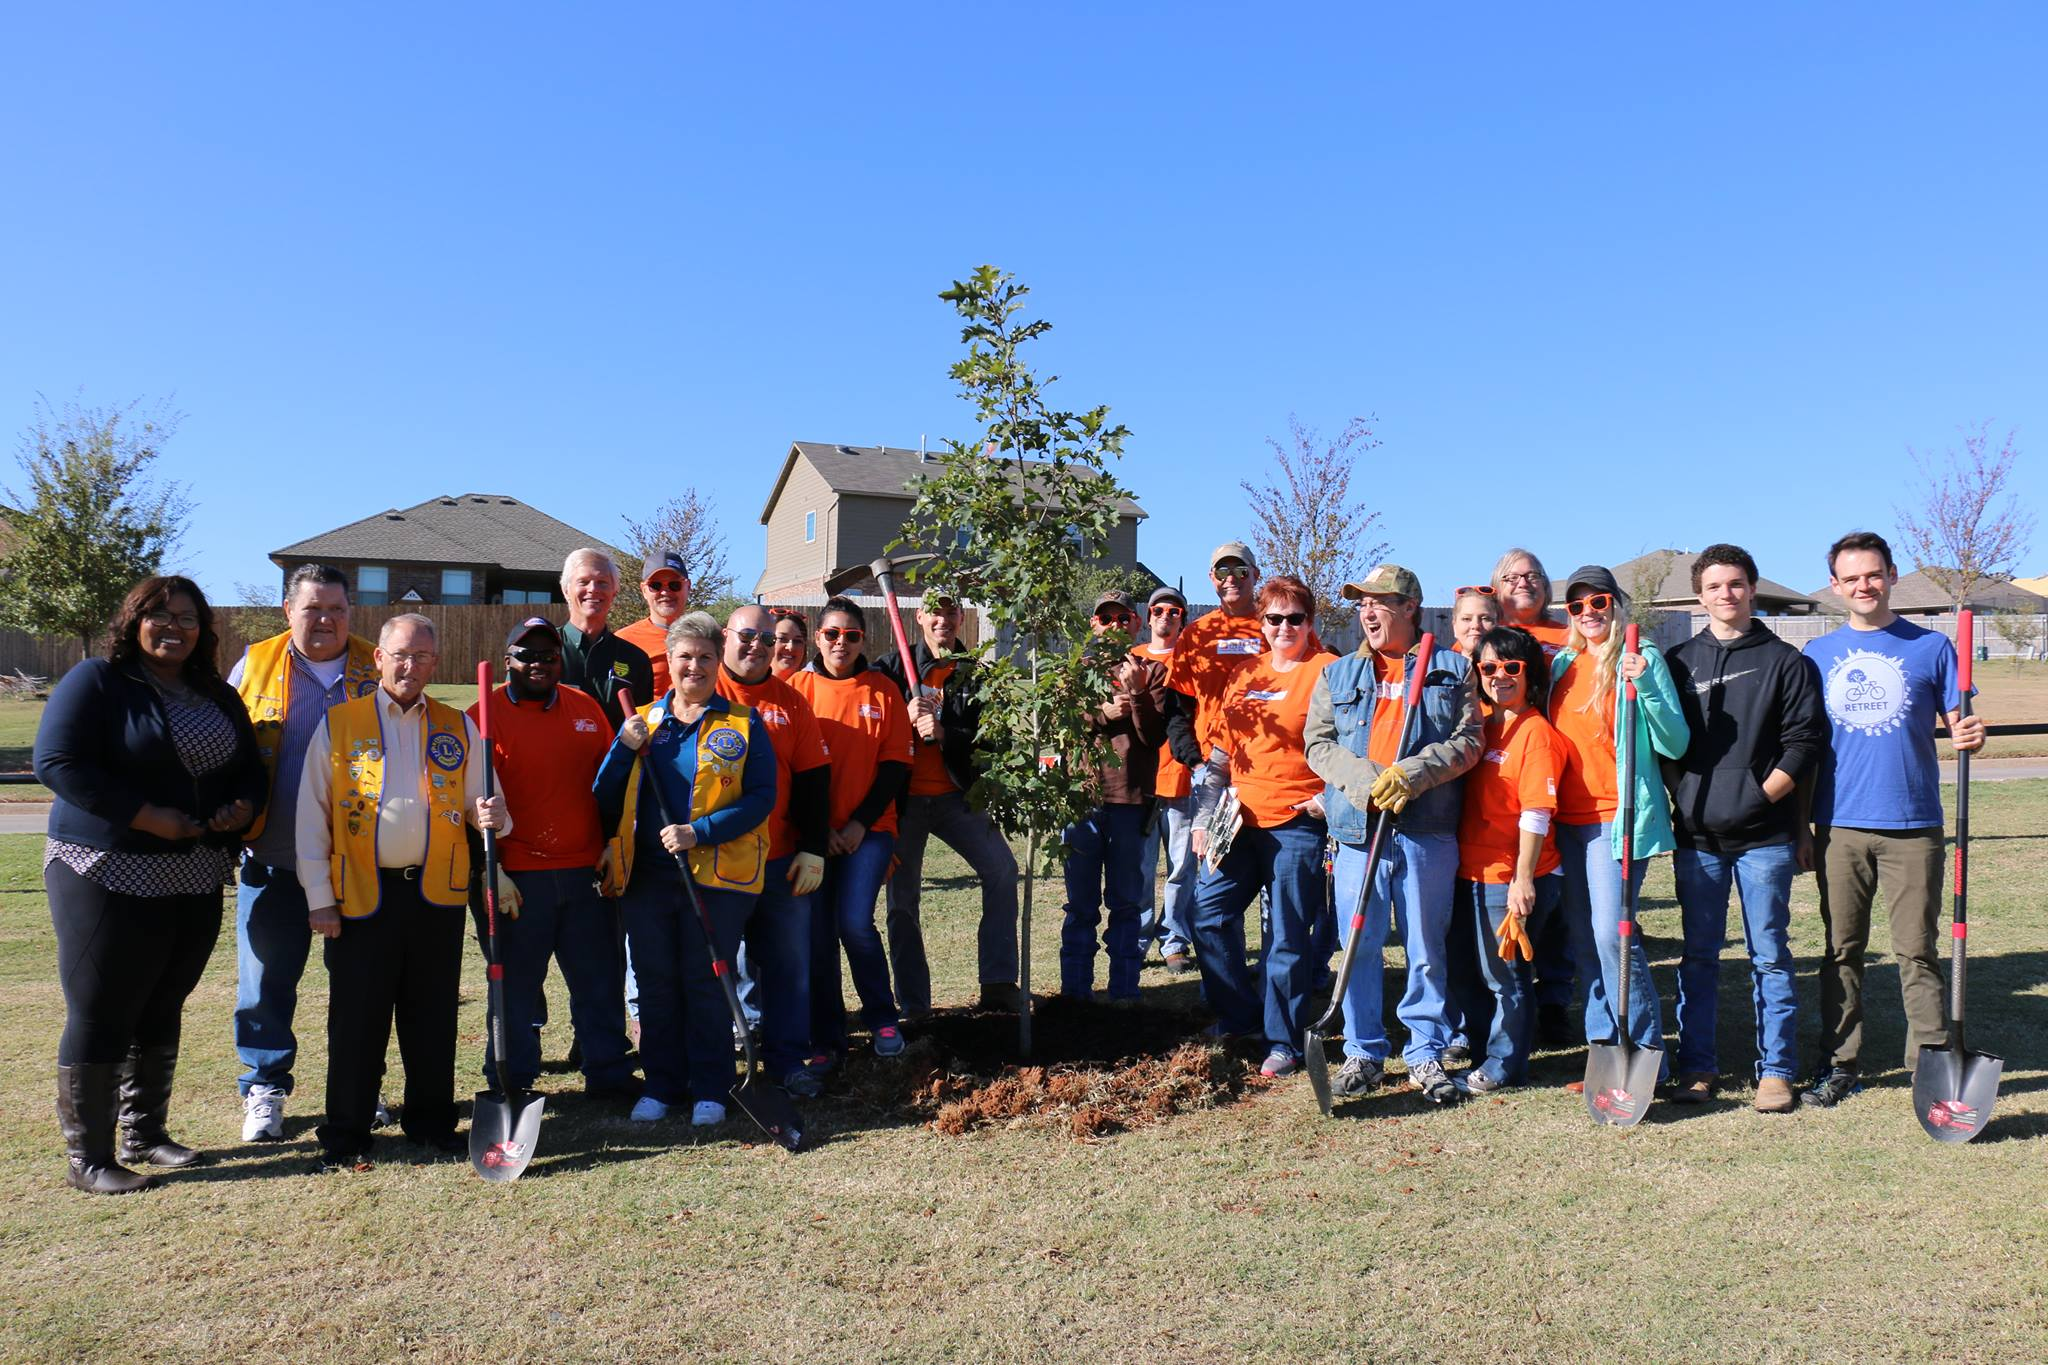 TEAM DEPOT POSES WITH LOCAL MEMBERS OF LIONS CLUB INTERNATIONAL, OKLAHOMA FORESTRY SERVICES, AND RETREET STAFF